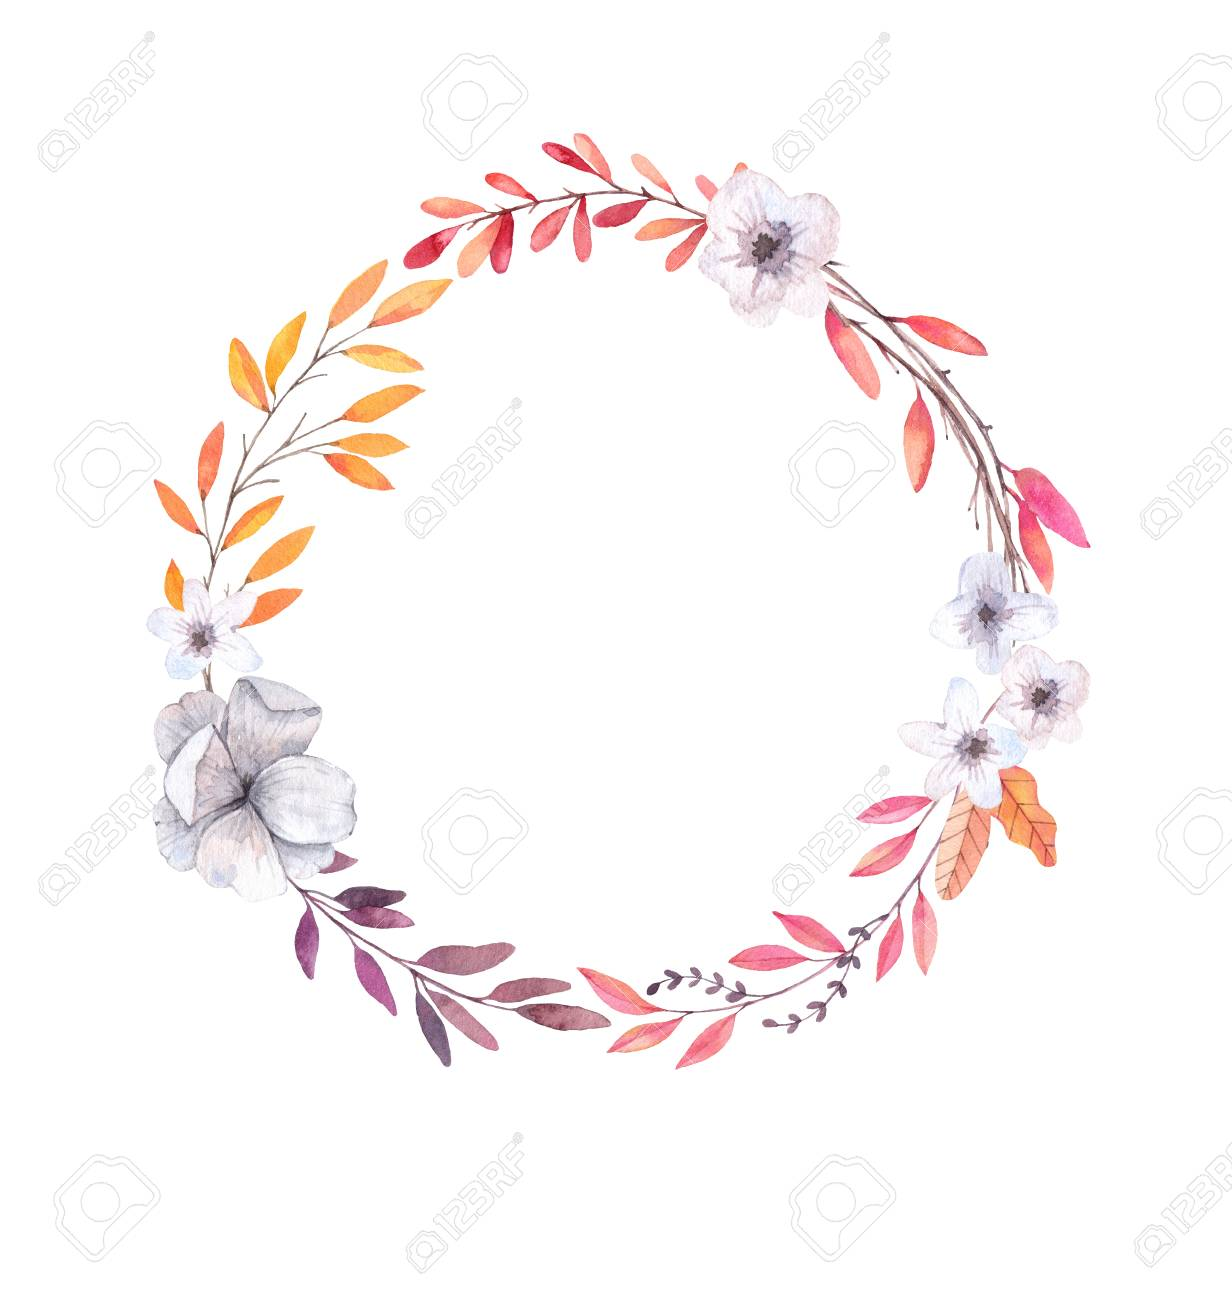 Hand Drawn Watercolor Illustration. Autumn Wreath. Fall Leaves ...